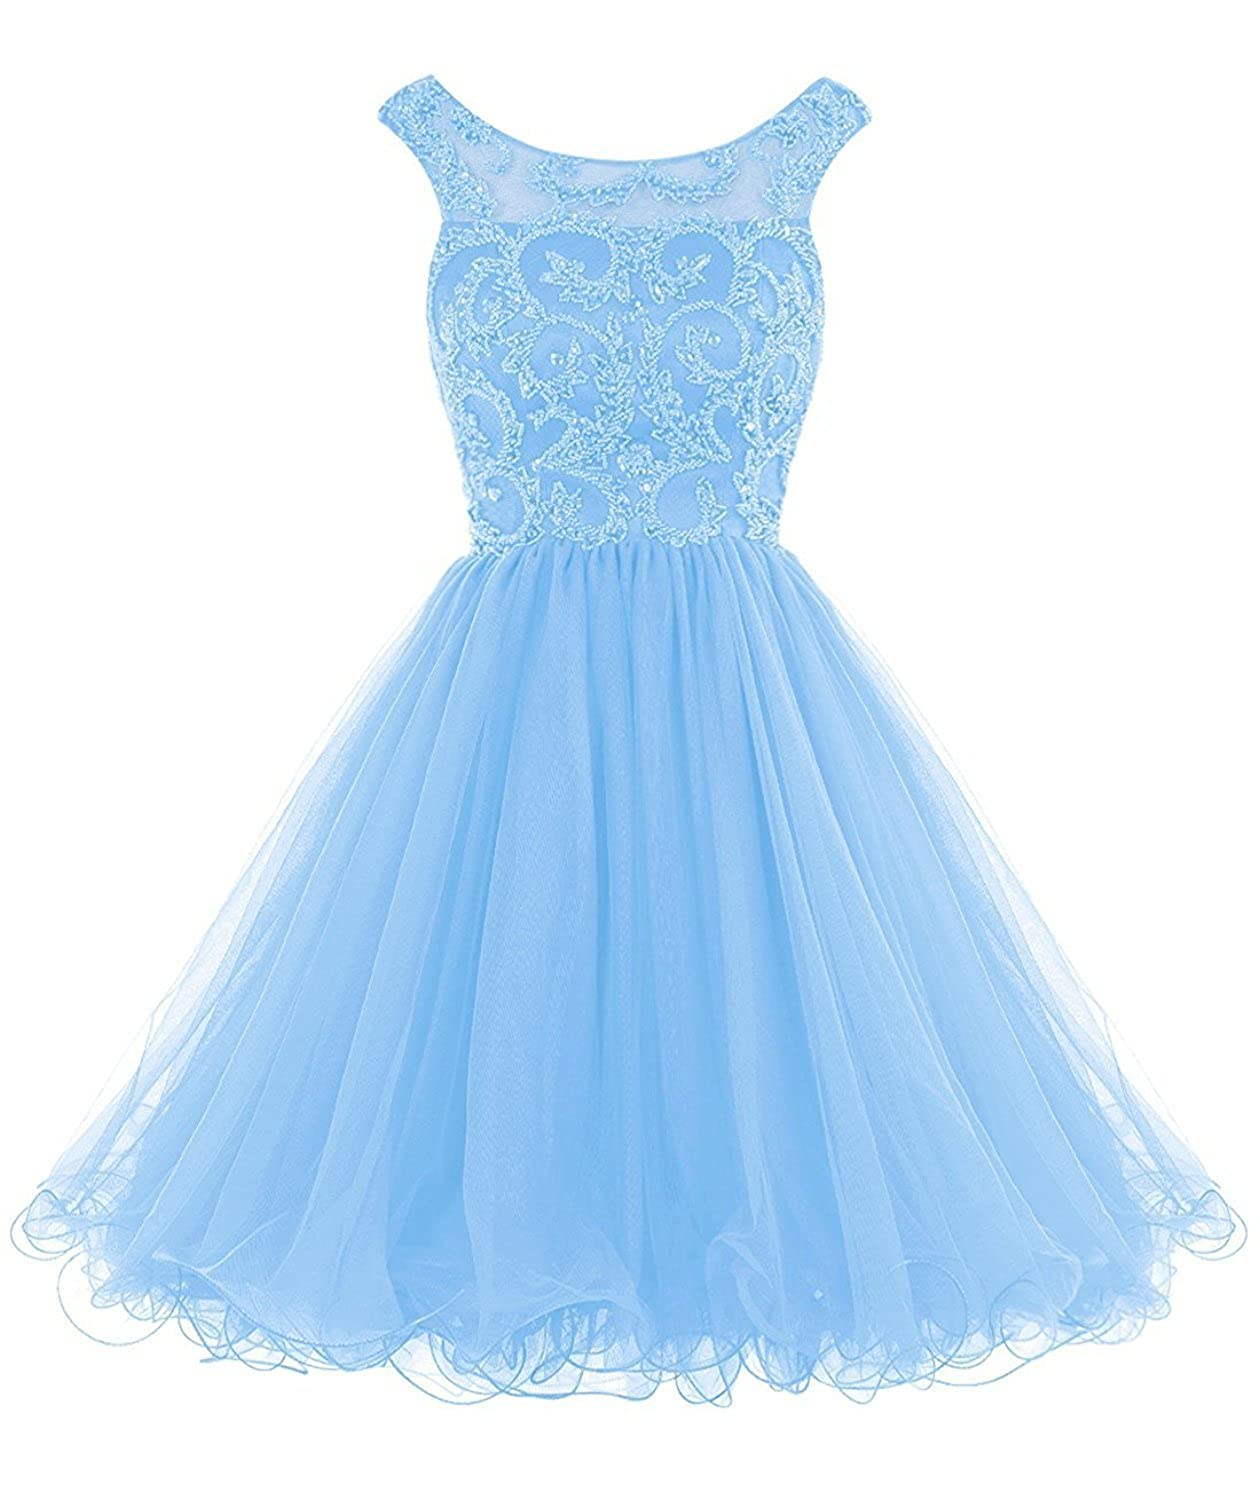 bluee Caissen Women's Short Ball Gown Illusion Scoop Neck Beading Rhinestones Tulle Prom Dress V Back with Zipper Party Wear